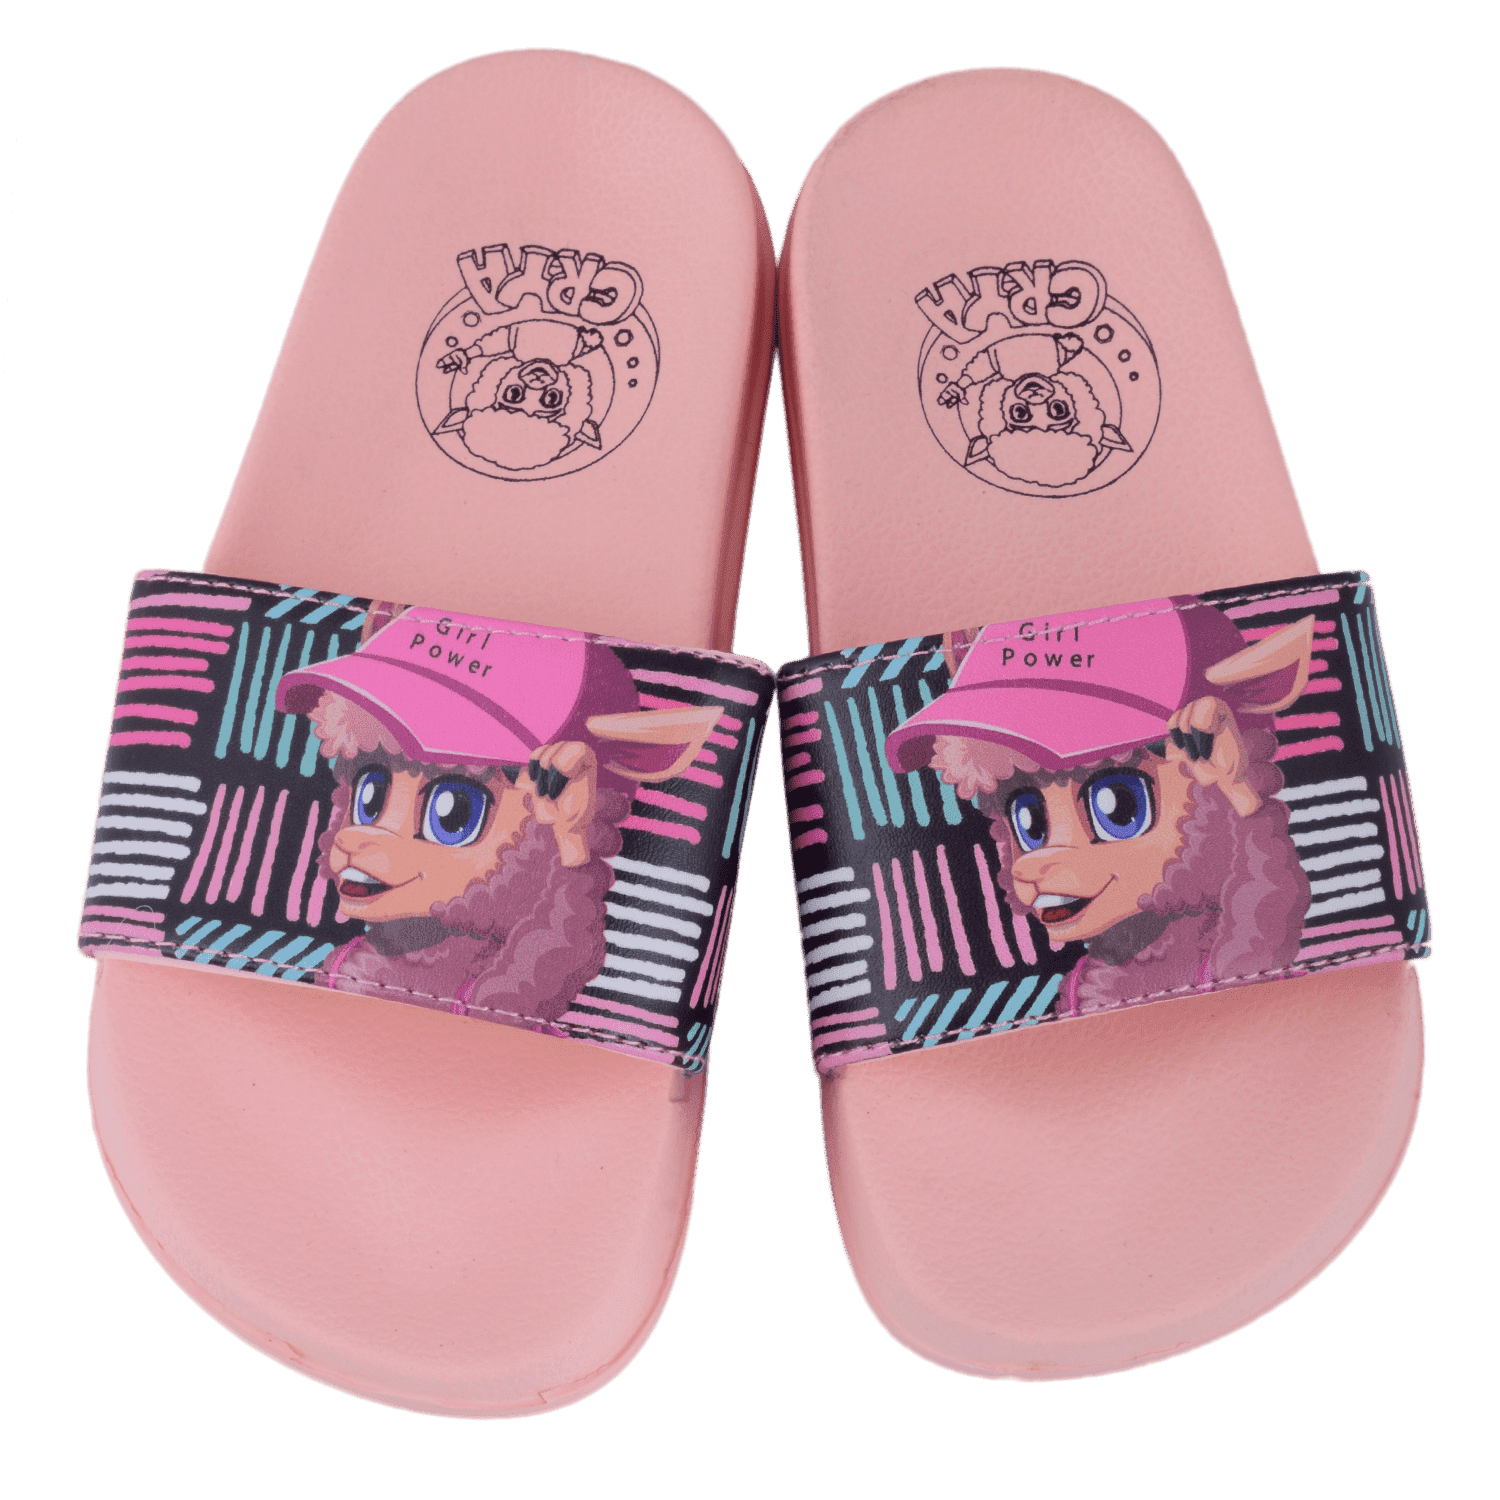 crya-girl-power-slide-on-slipper-slsl8002girpin